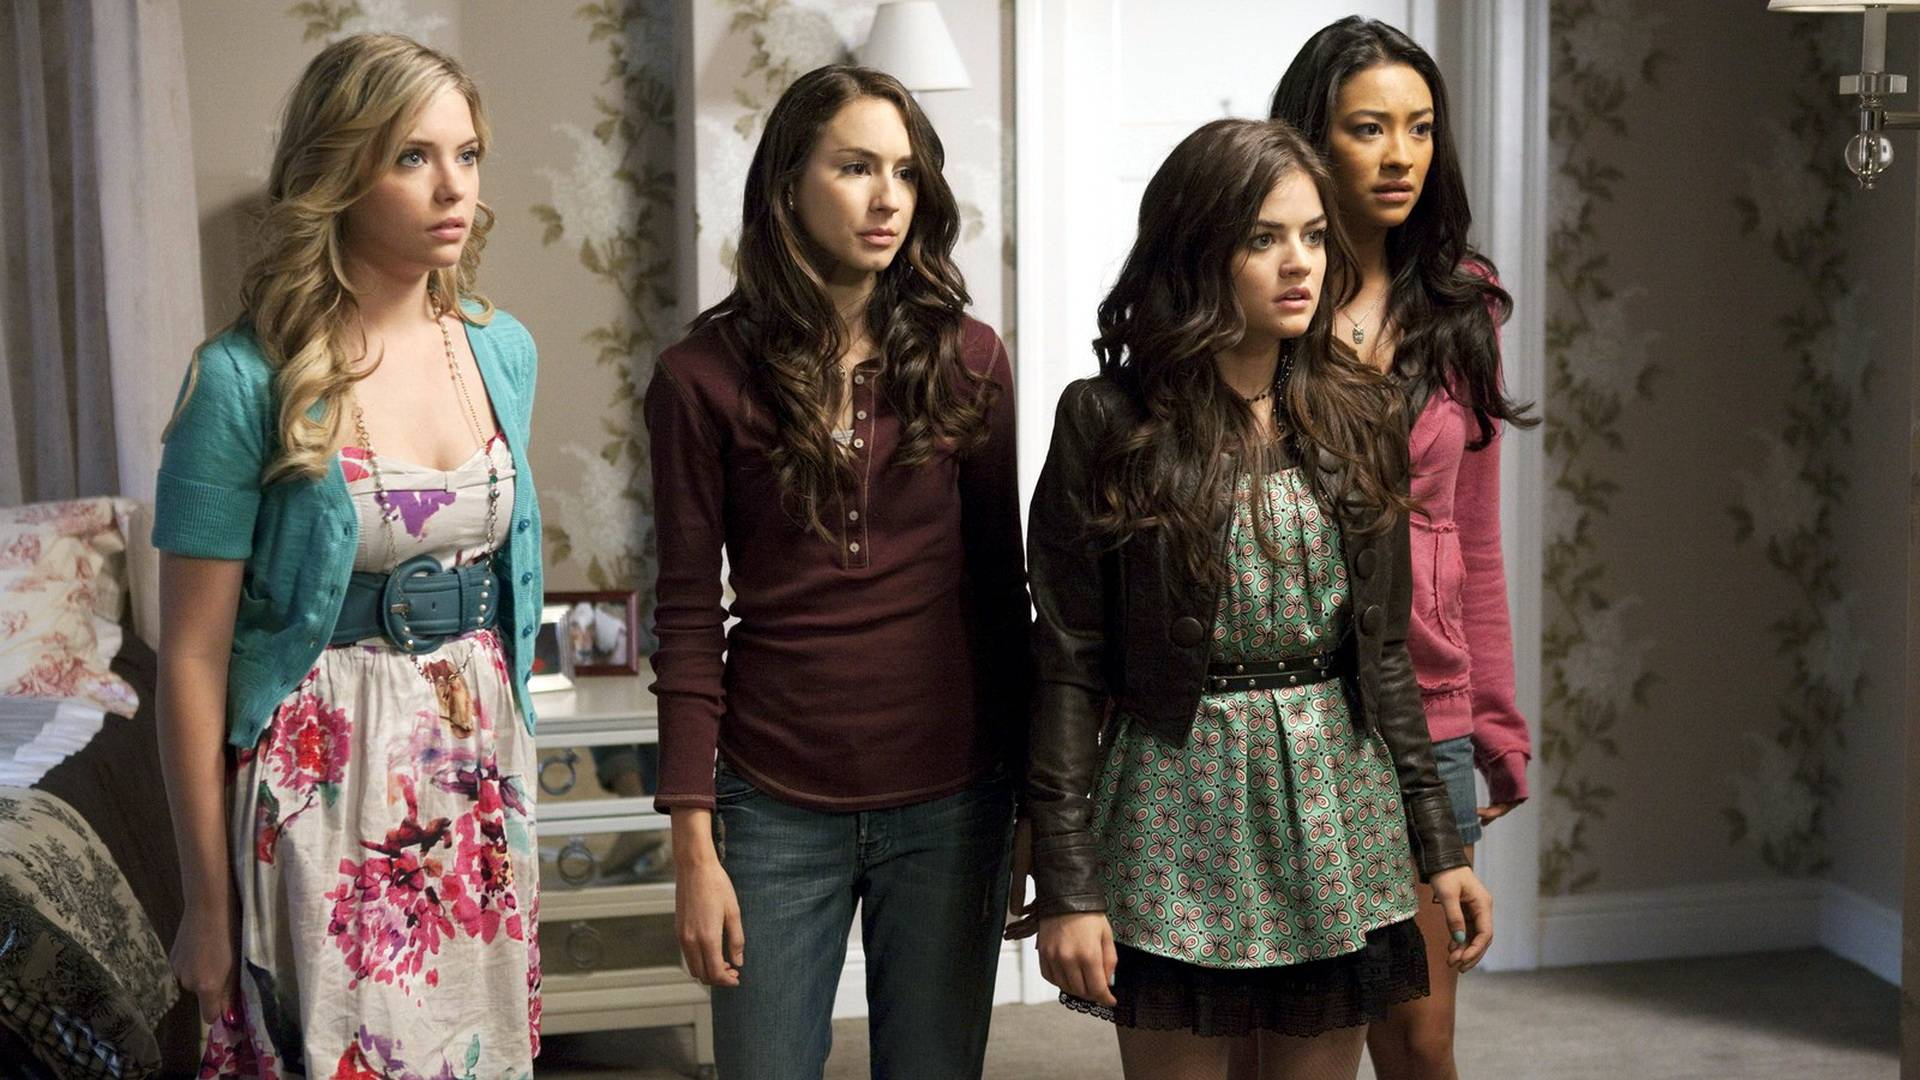 71715-pretty-little-liars-pretty-little-liars